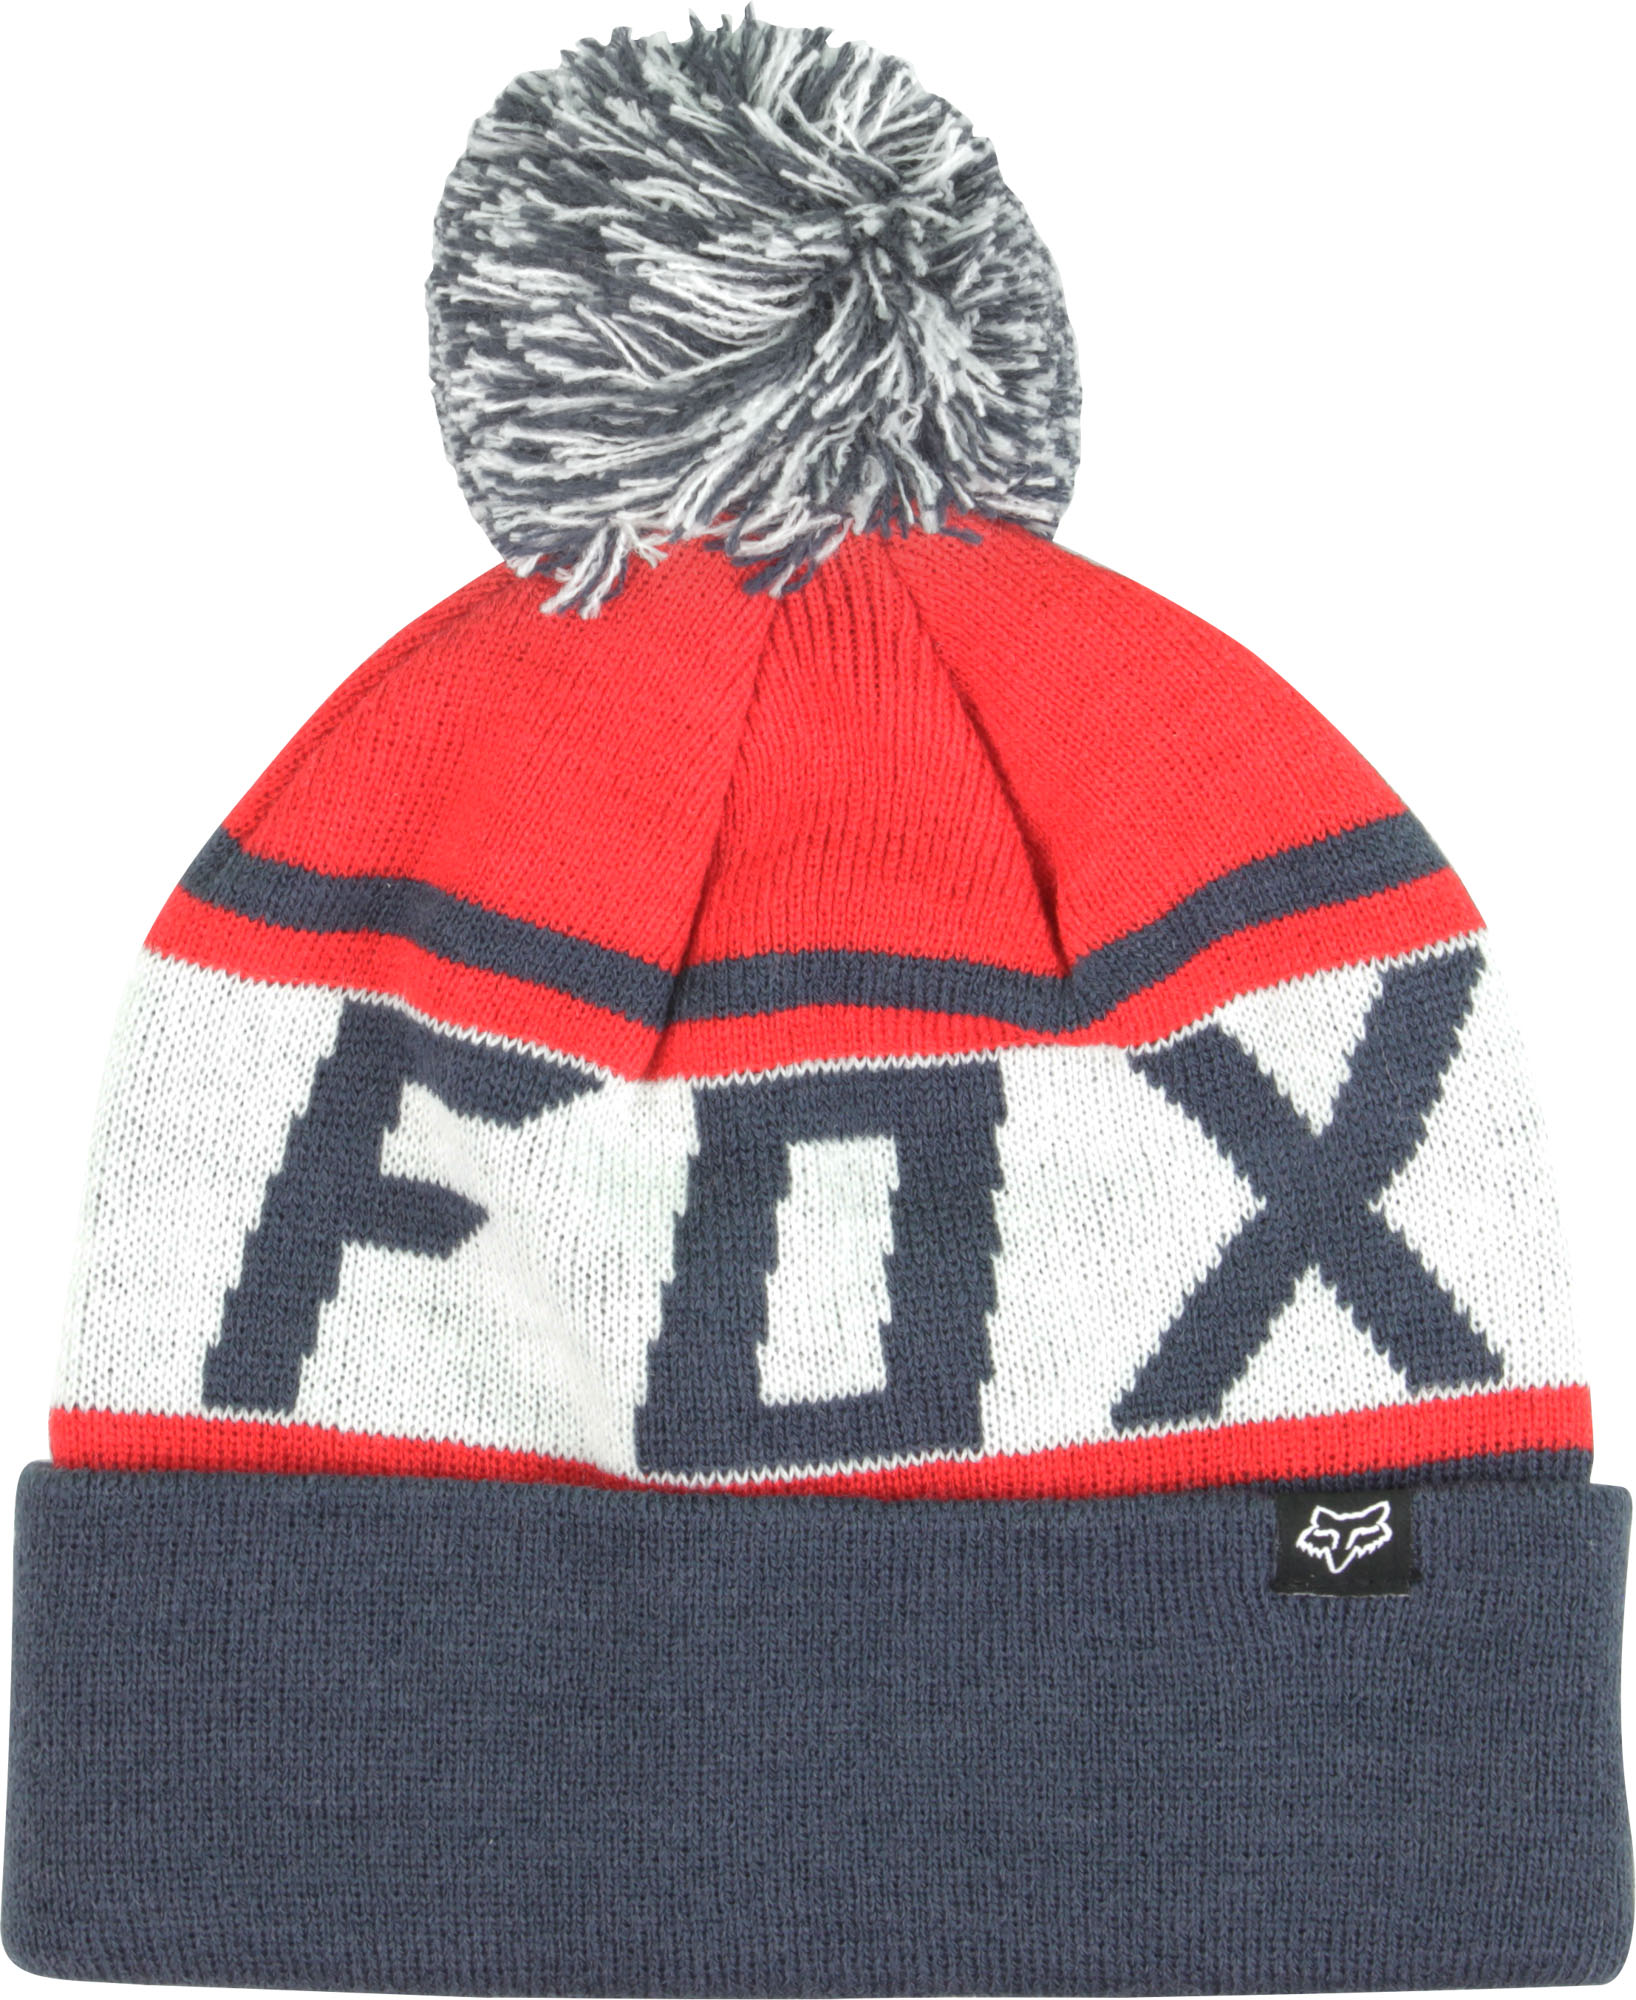 543f647c2d9 Details about Fox Racing Throwback Beanie (Navy Red White)